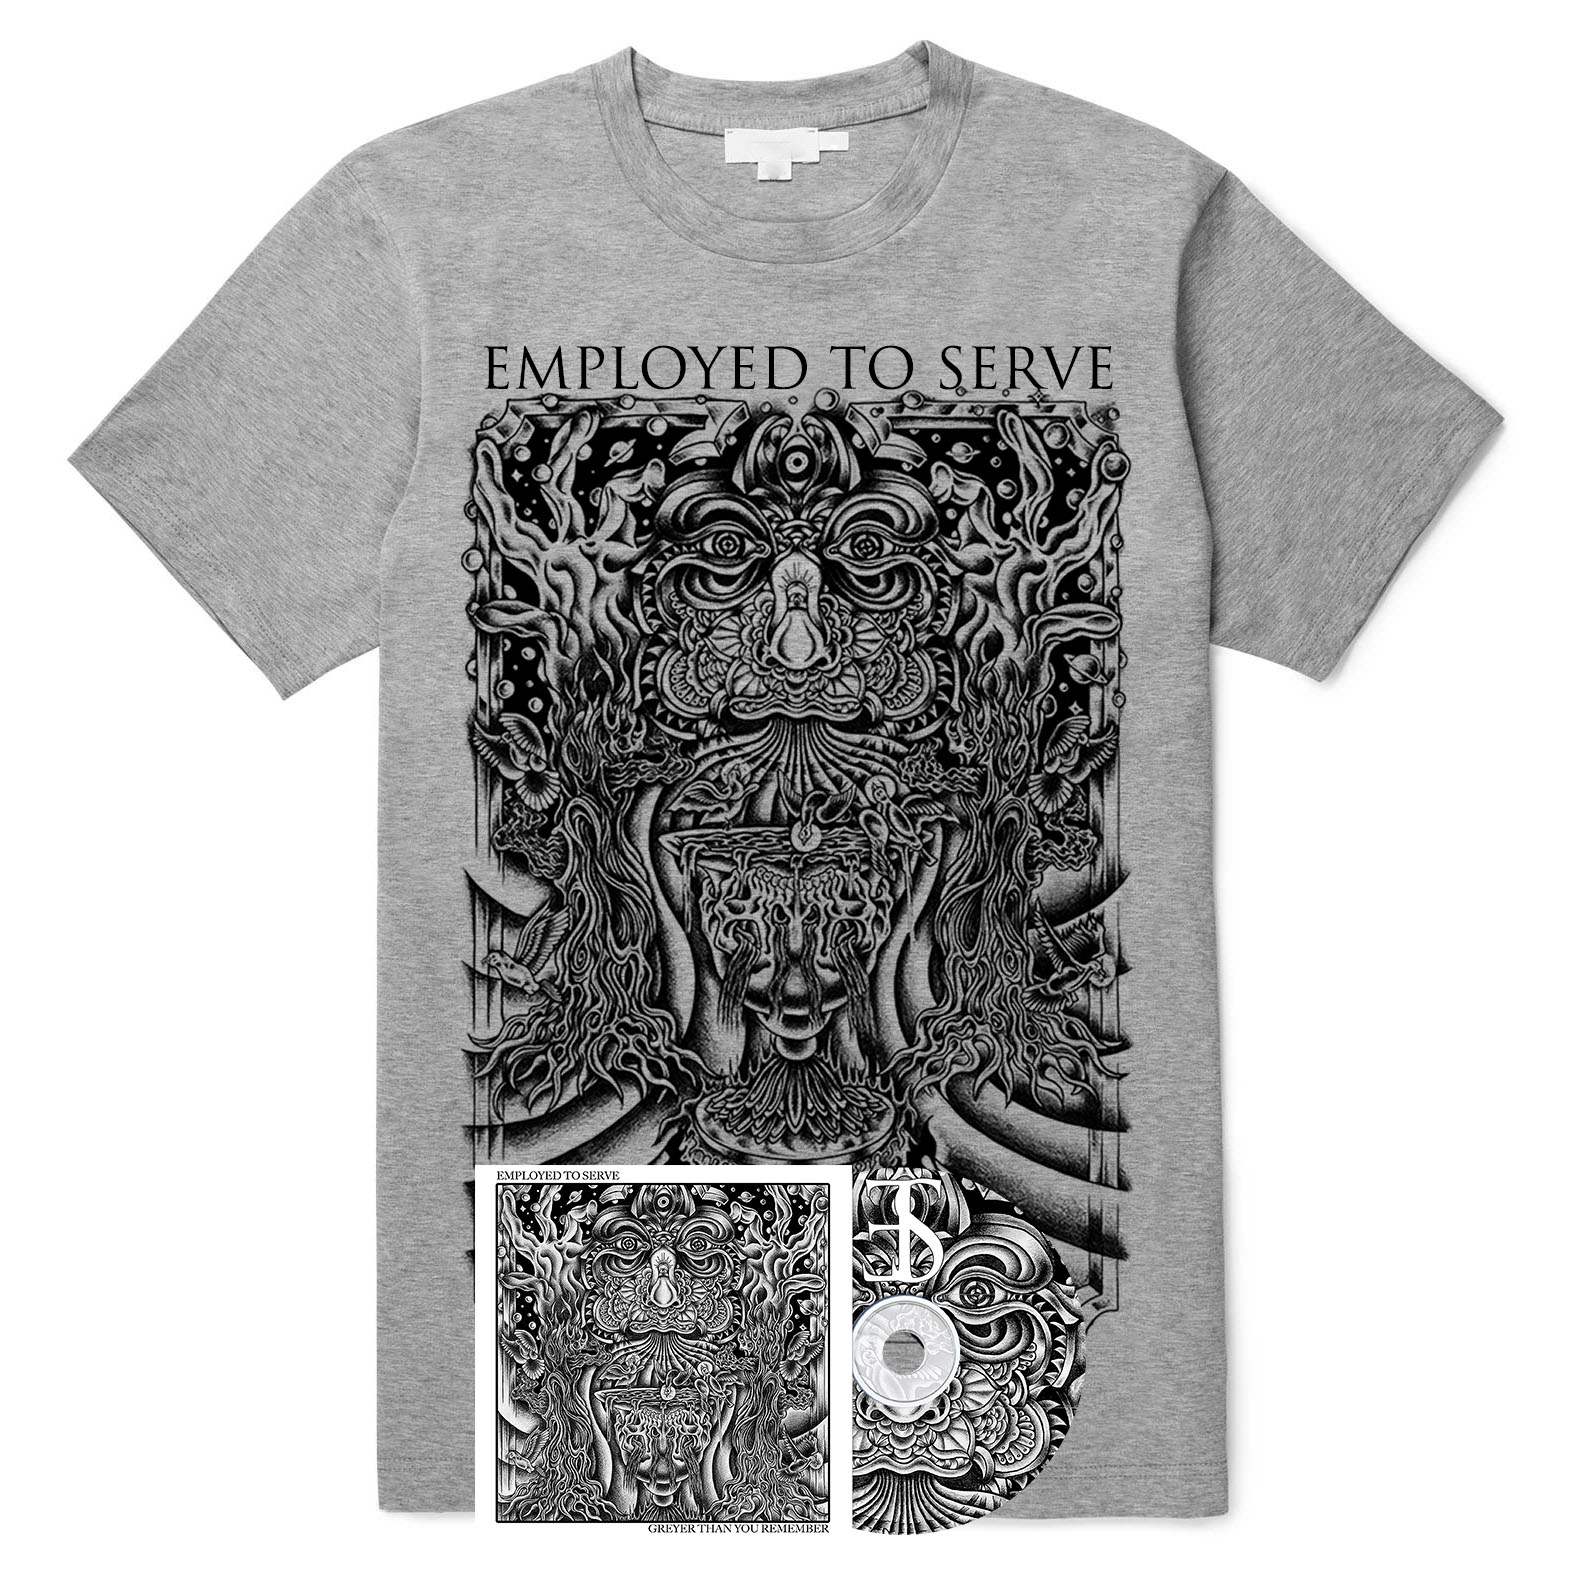 Employed To Serve - Greyer Than You Remember shirt + CD